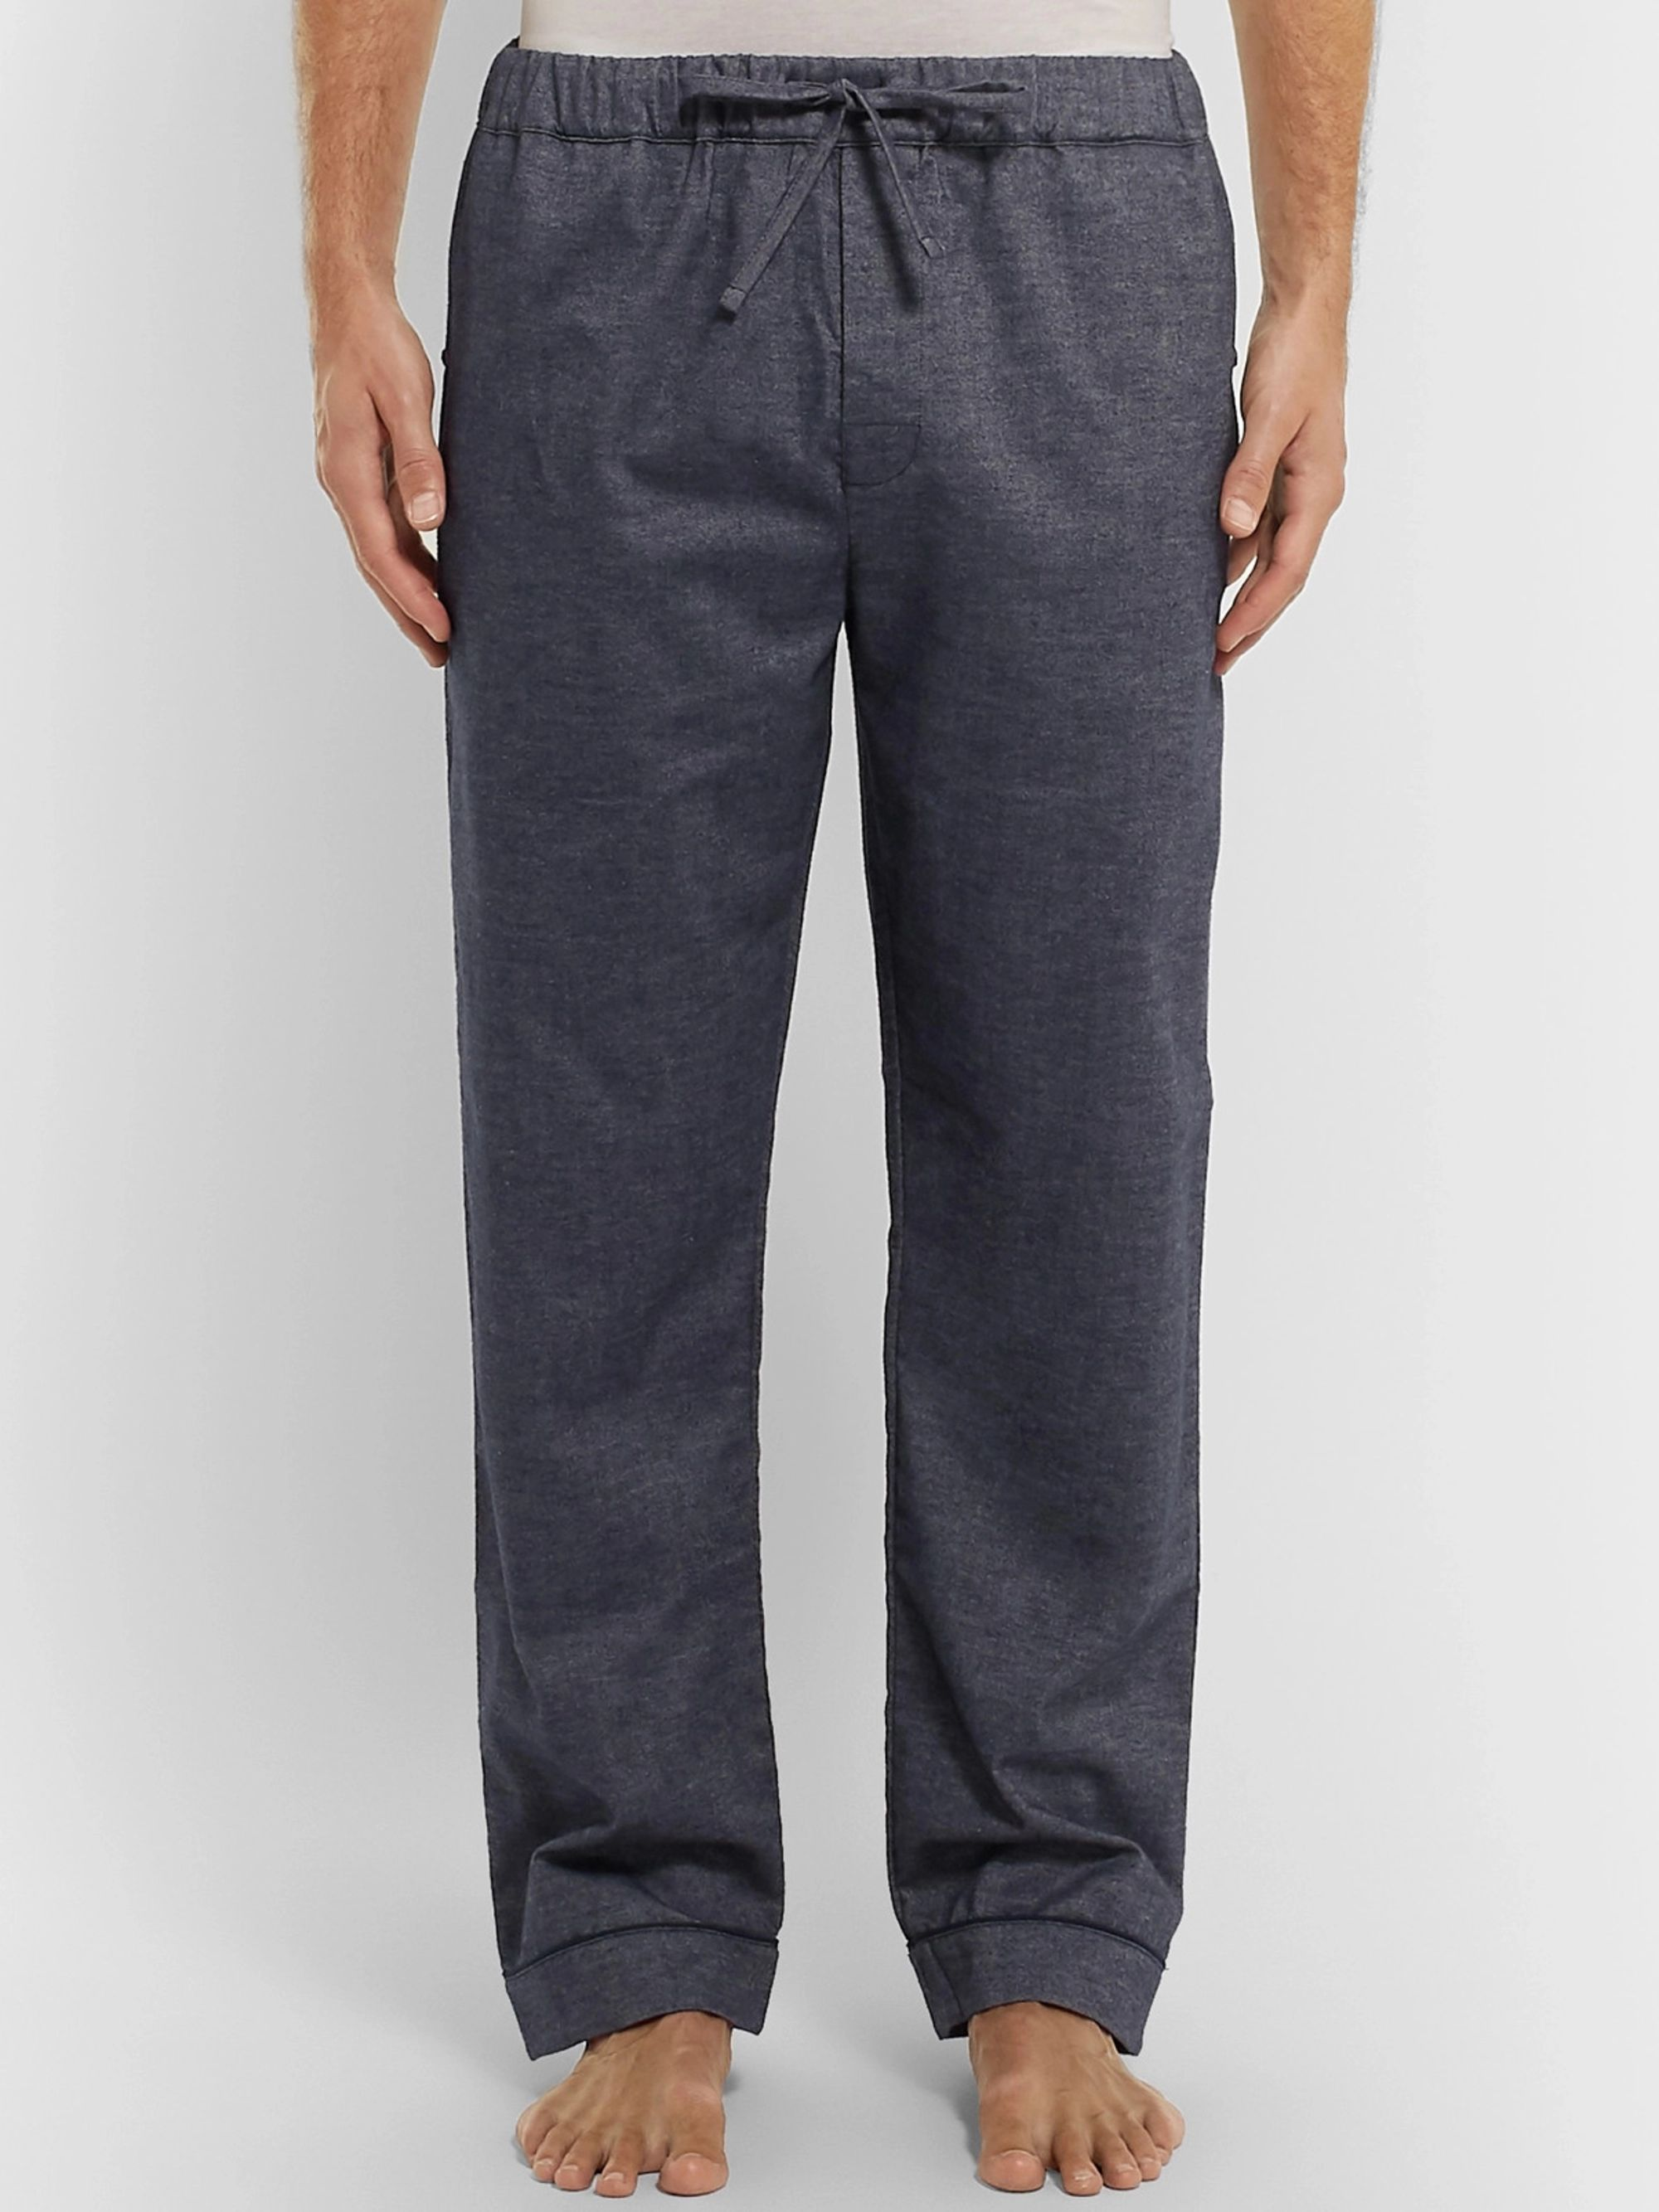 DESMOND & DEMPSEY Brushed Cotton-Twill Pyjama Trousers